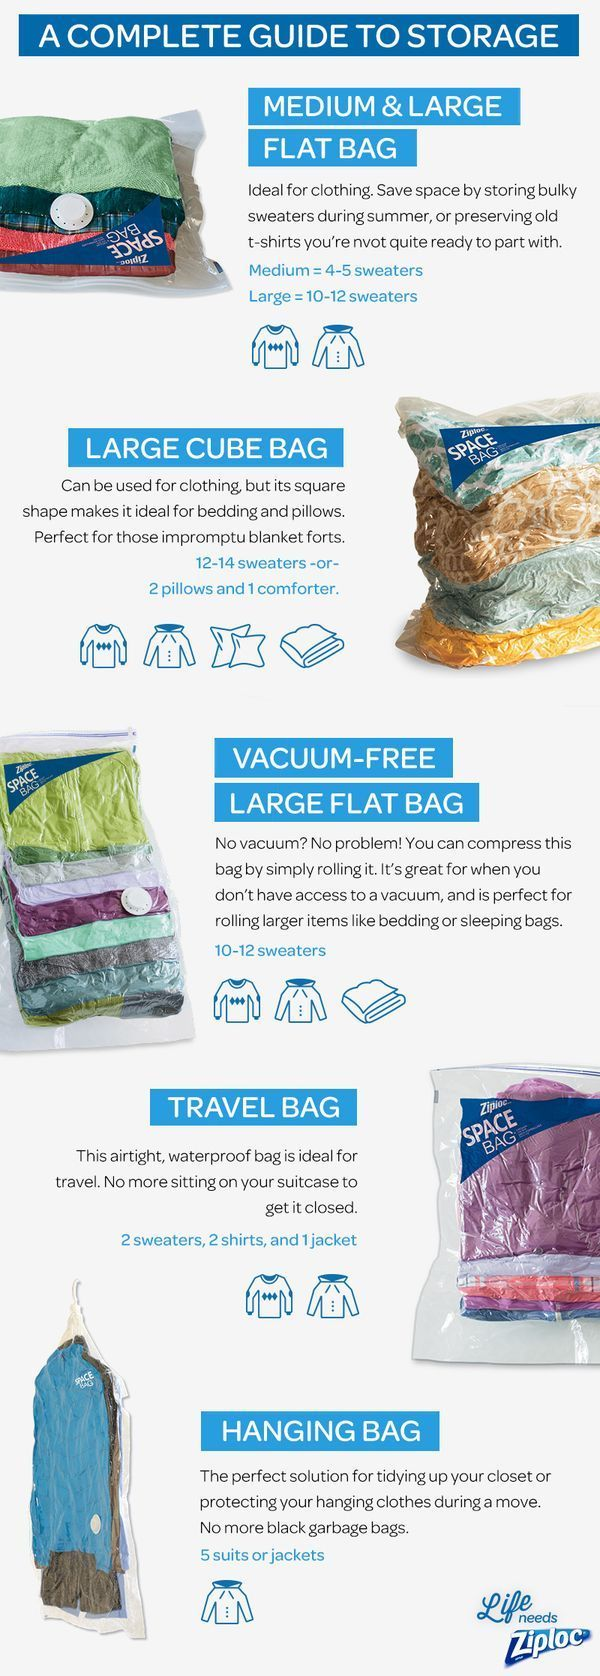 Swap Out Your Seasonal Clothes And Stay Organized With Ziploc® Space Bag®  Products.